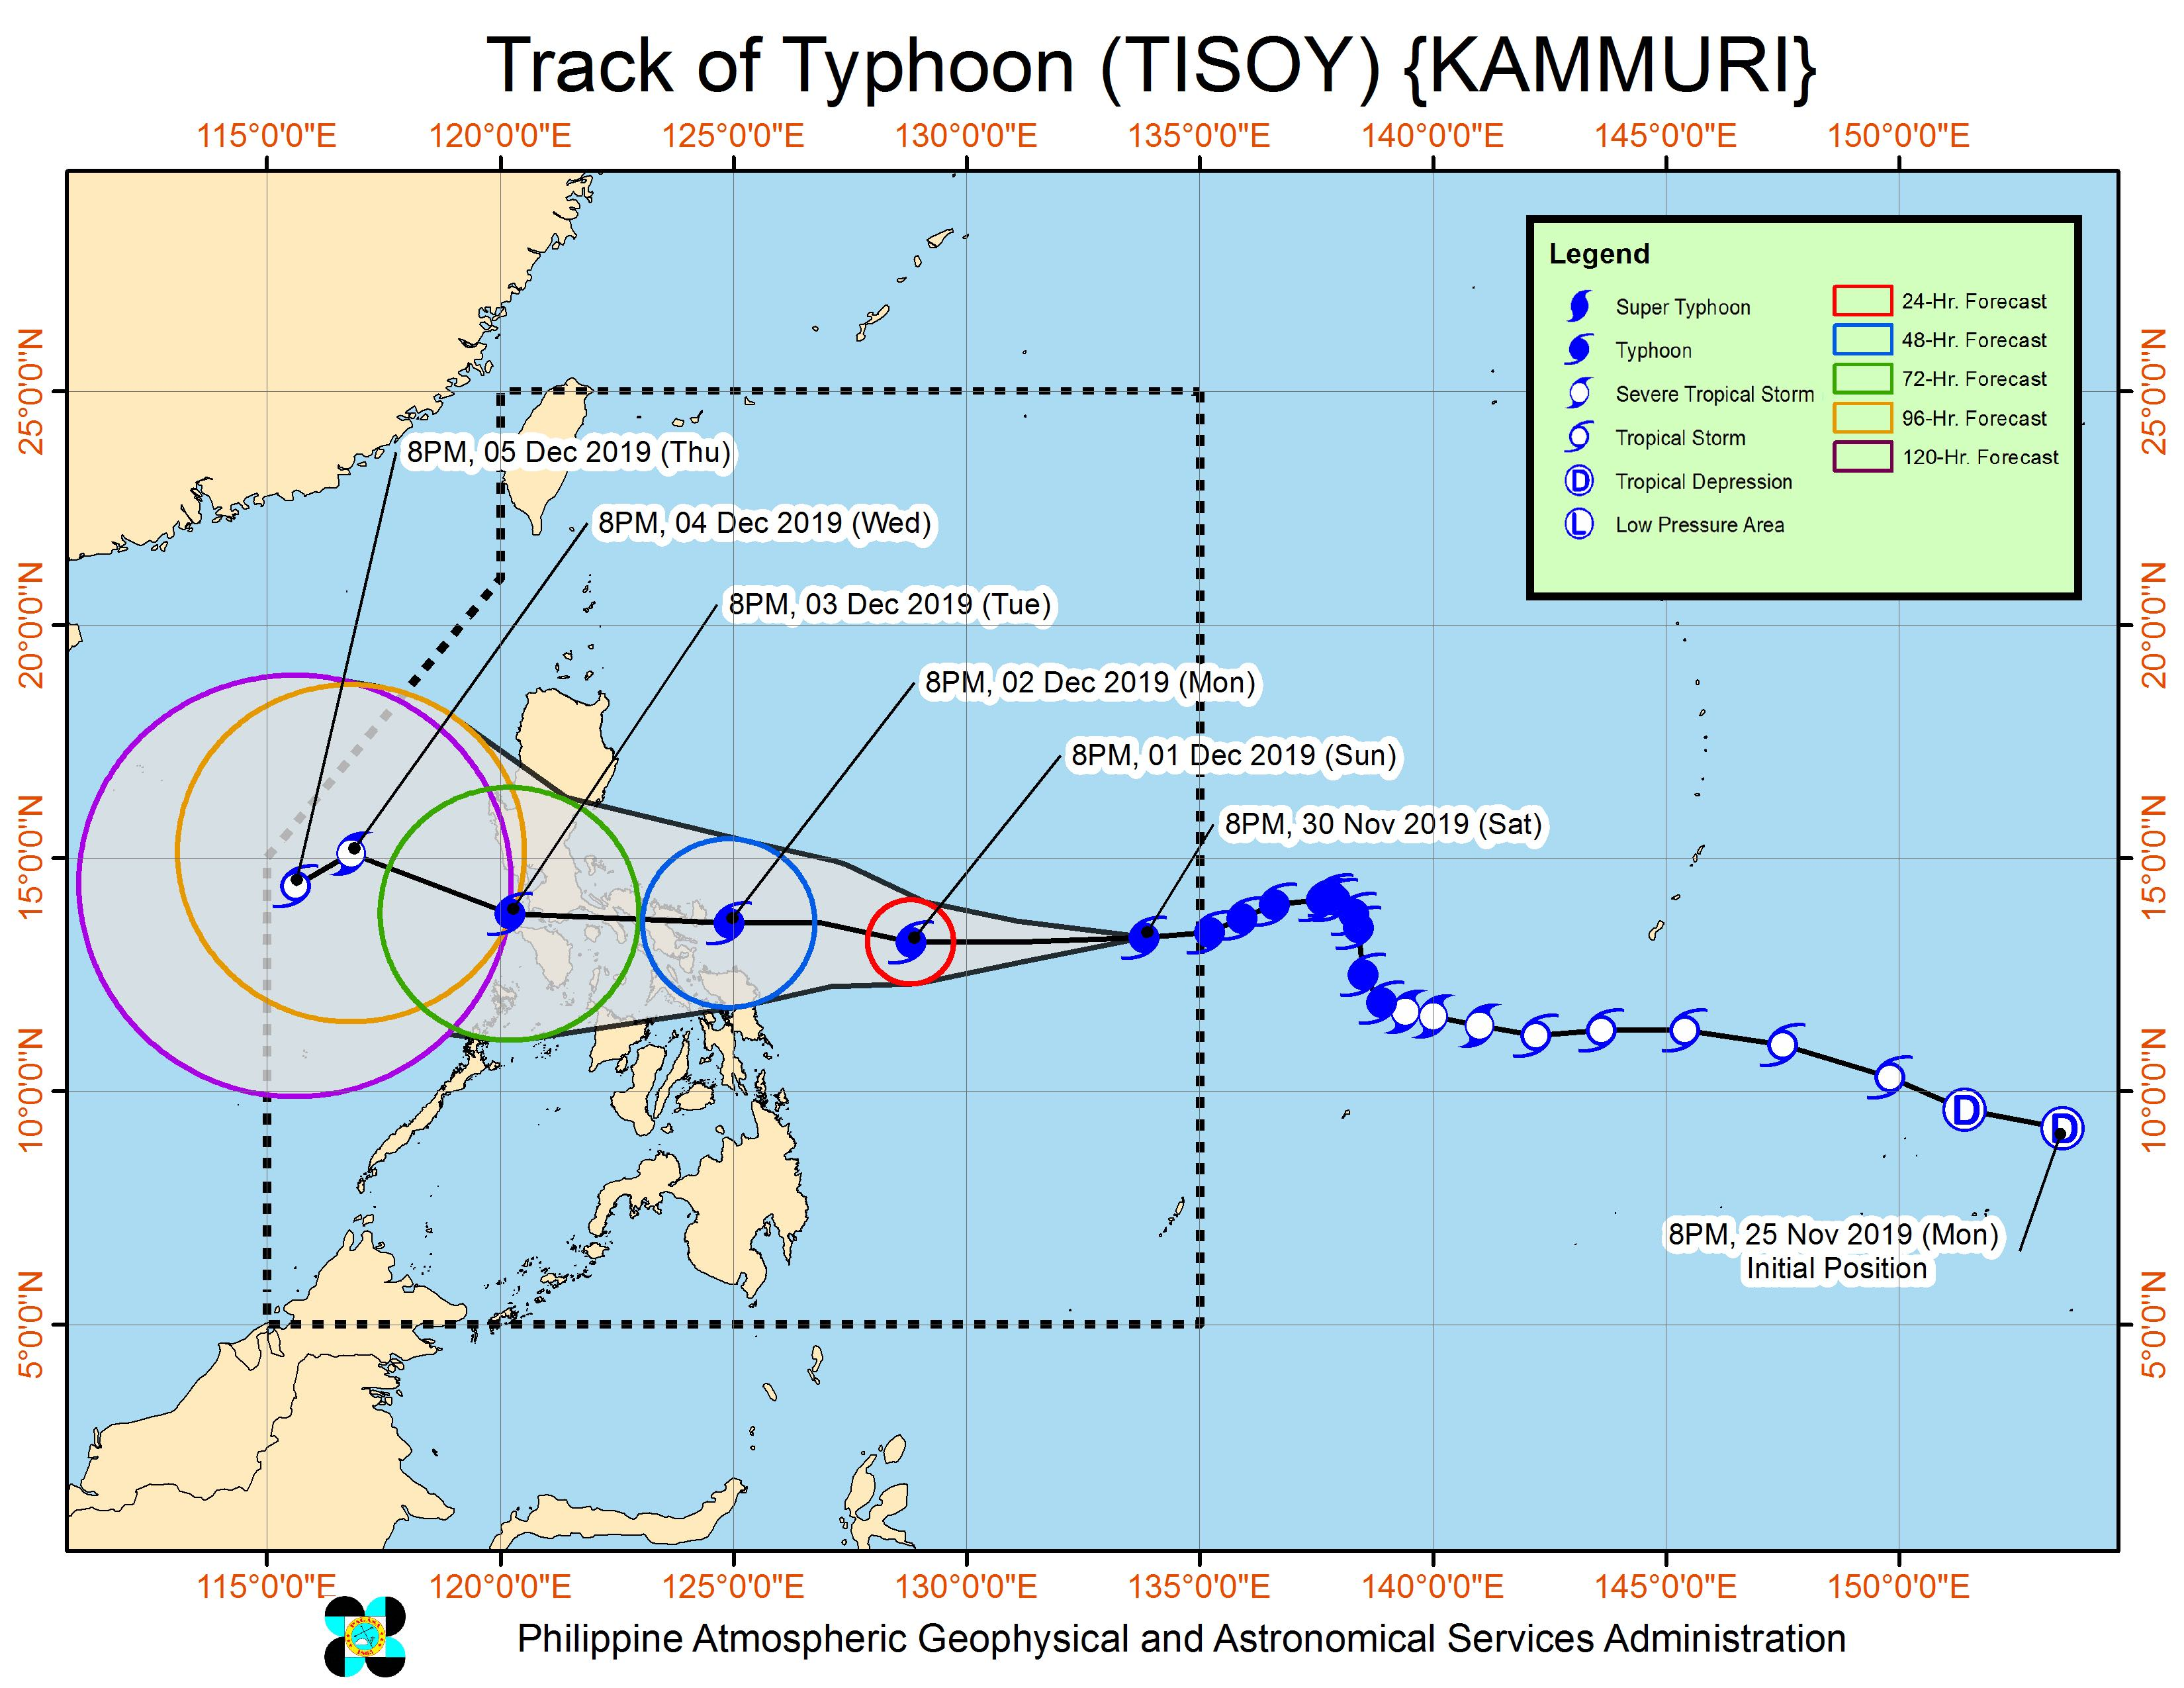 Forecast track of Typhoon Tisoy (Kammuri) as of November 30, 2019, 11 pm. Image from PAGASA